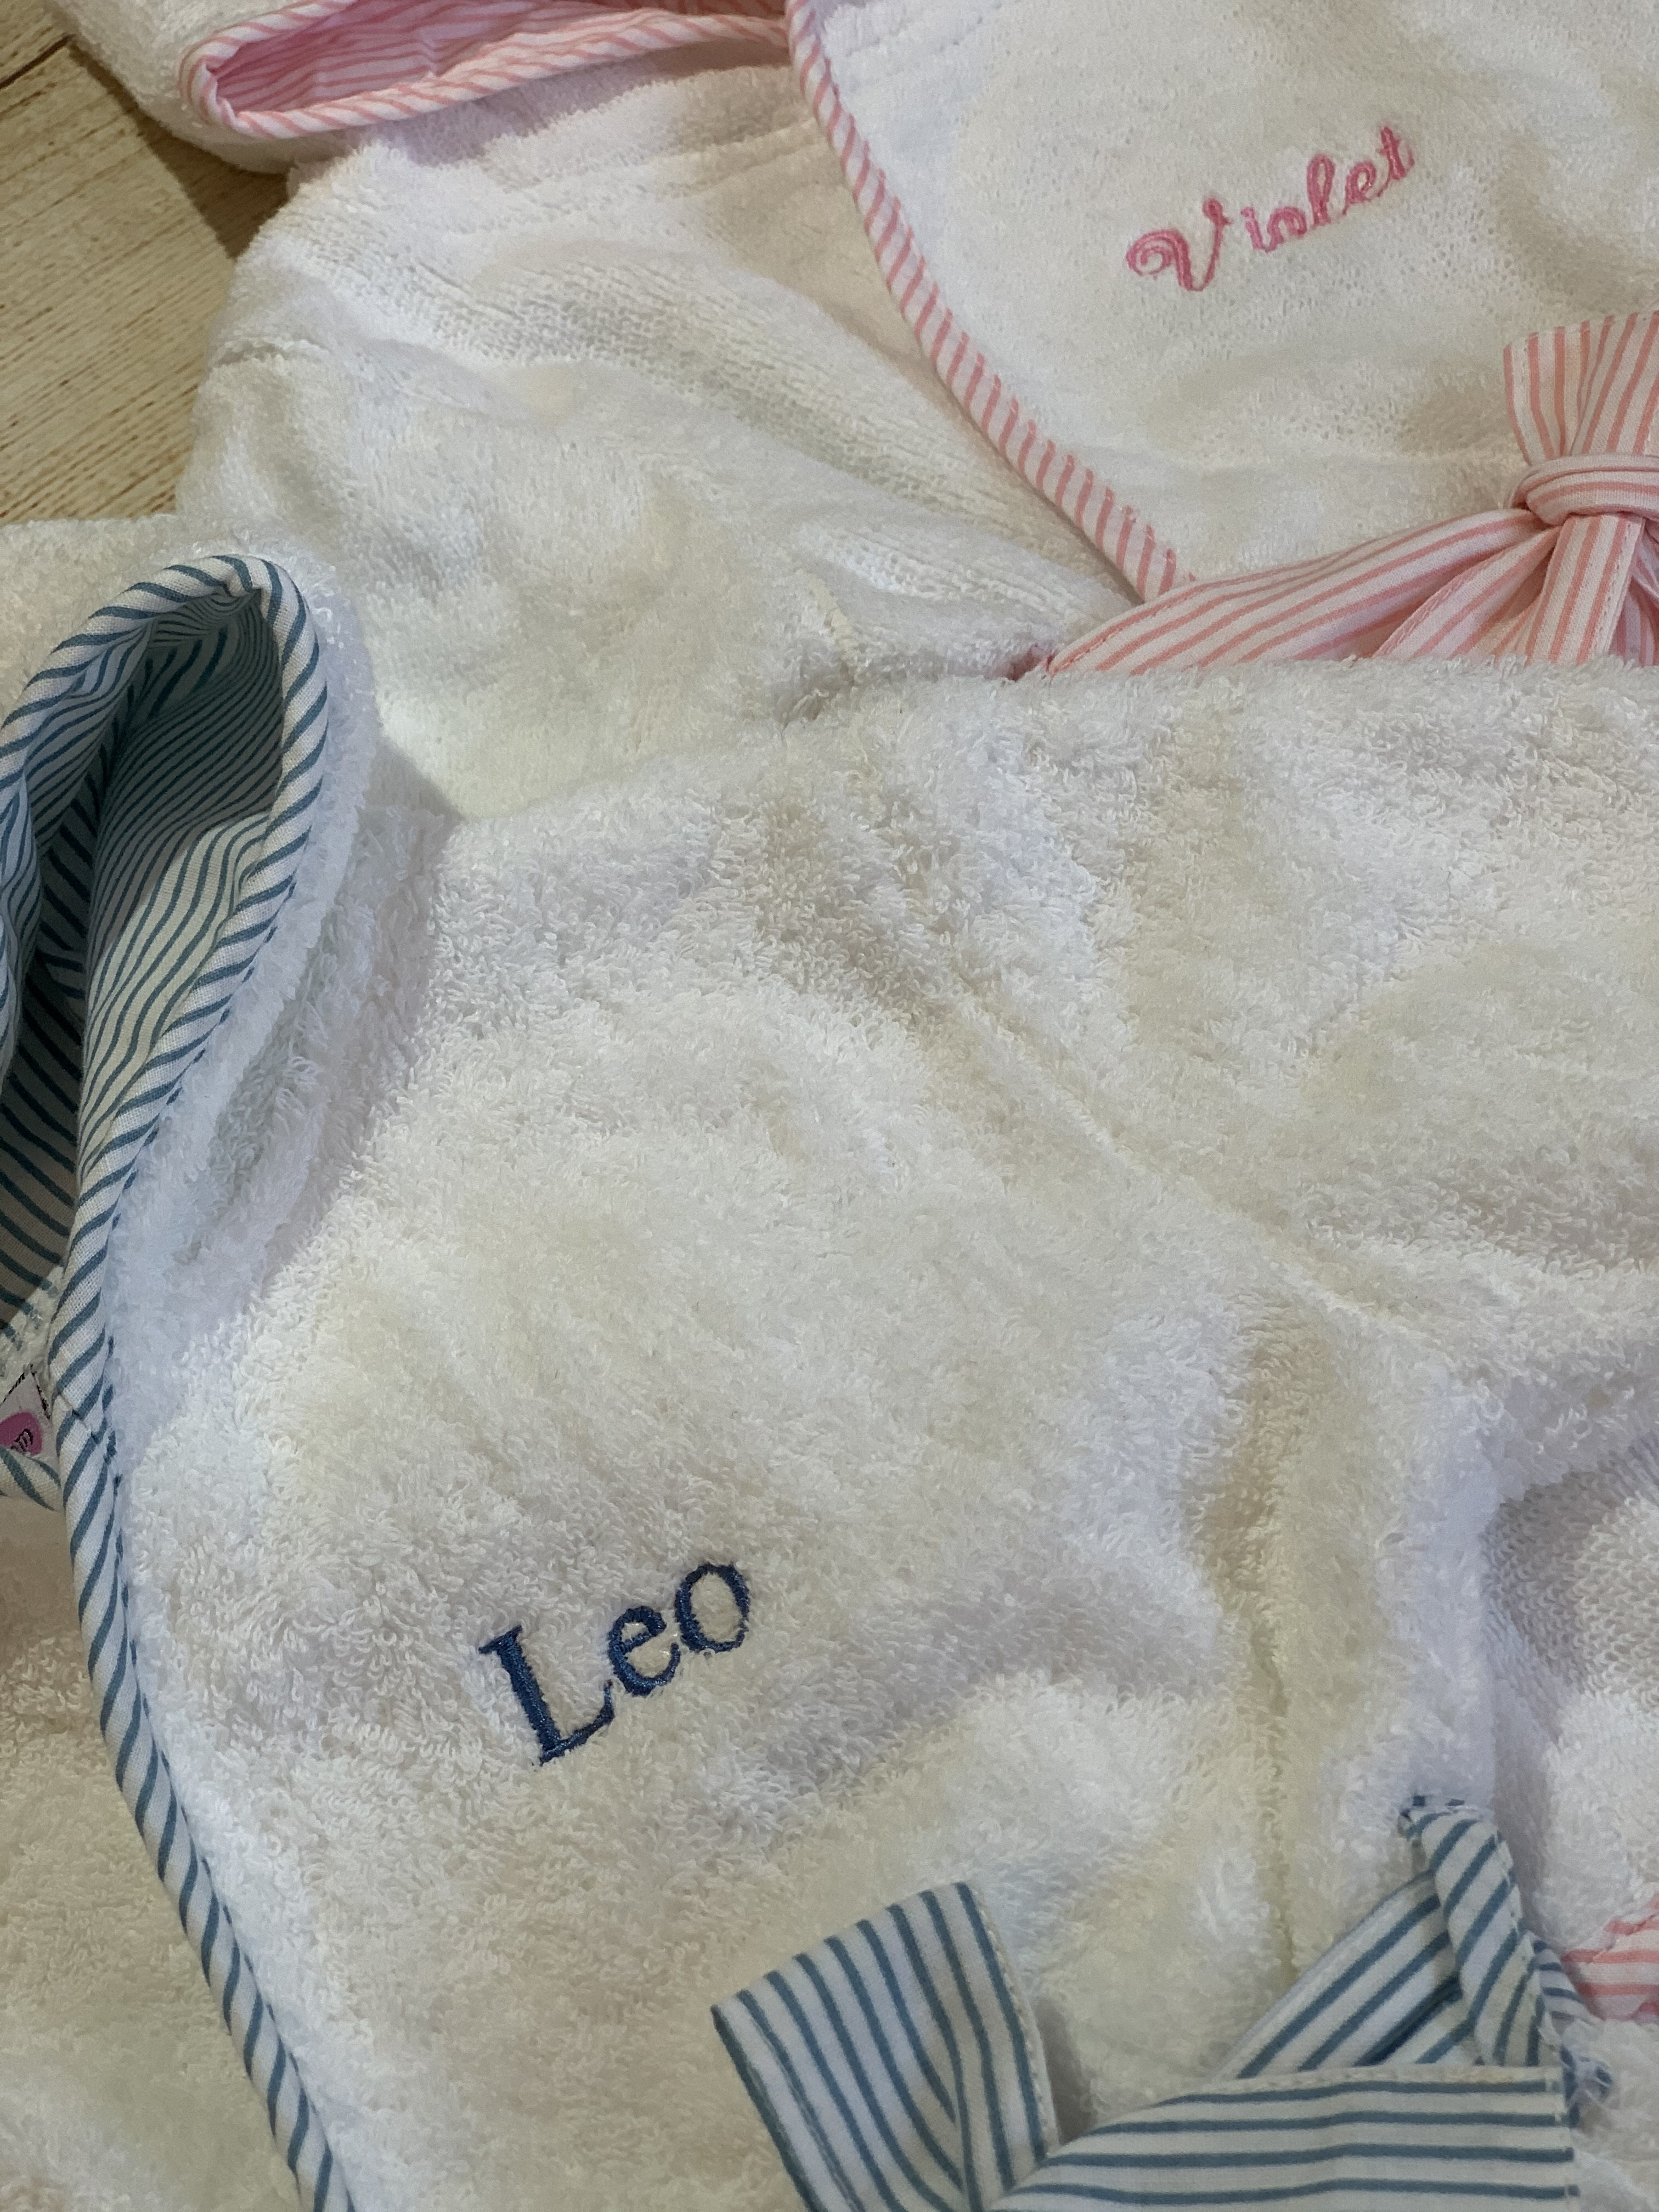 Expert monogramming by Wicked Stitches Gifts